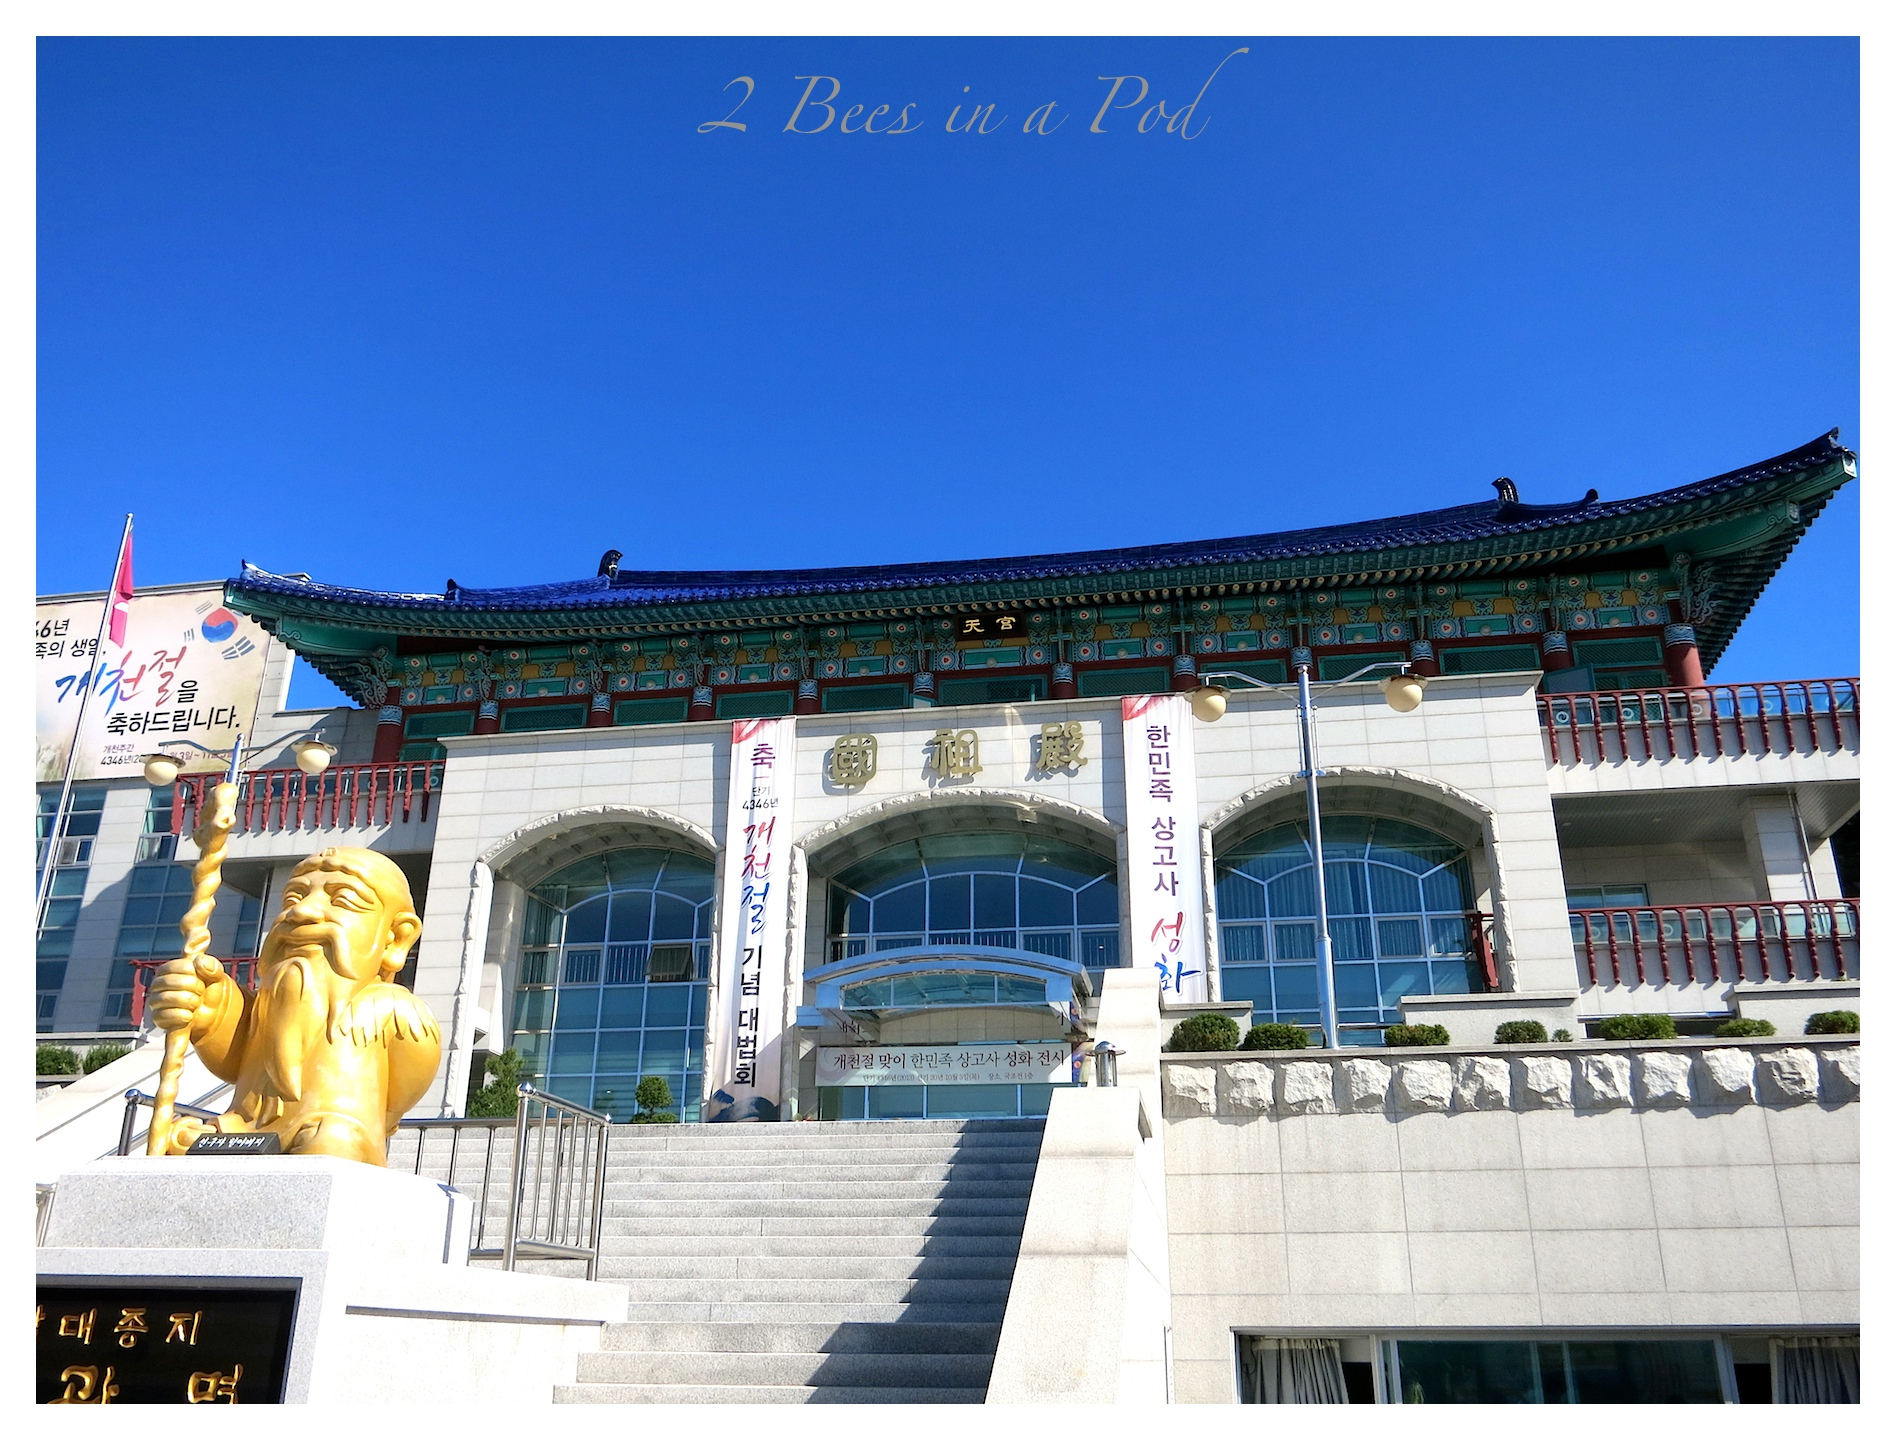 A gold statue of the founder of Korea in front of a meditation temple